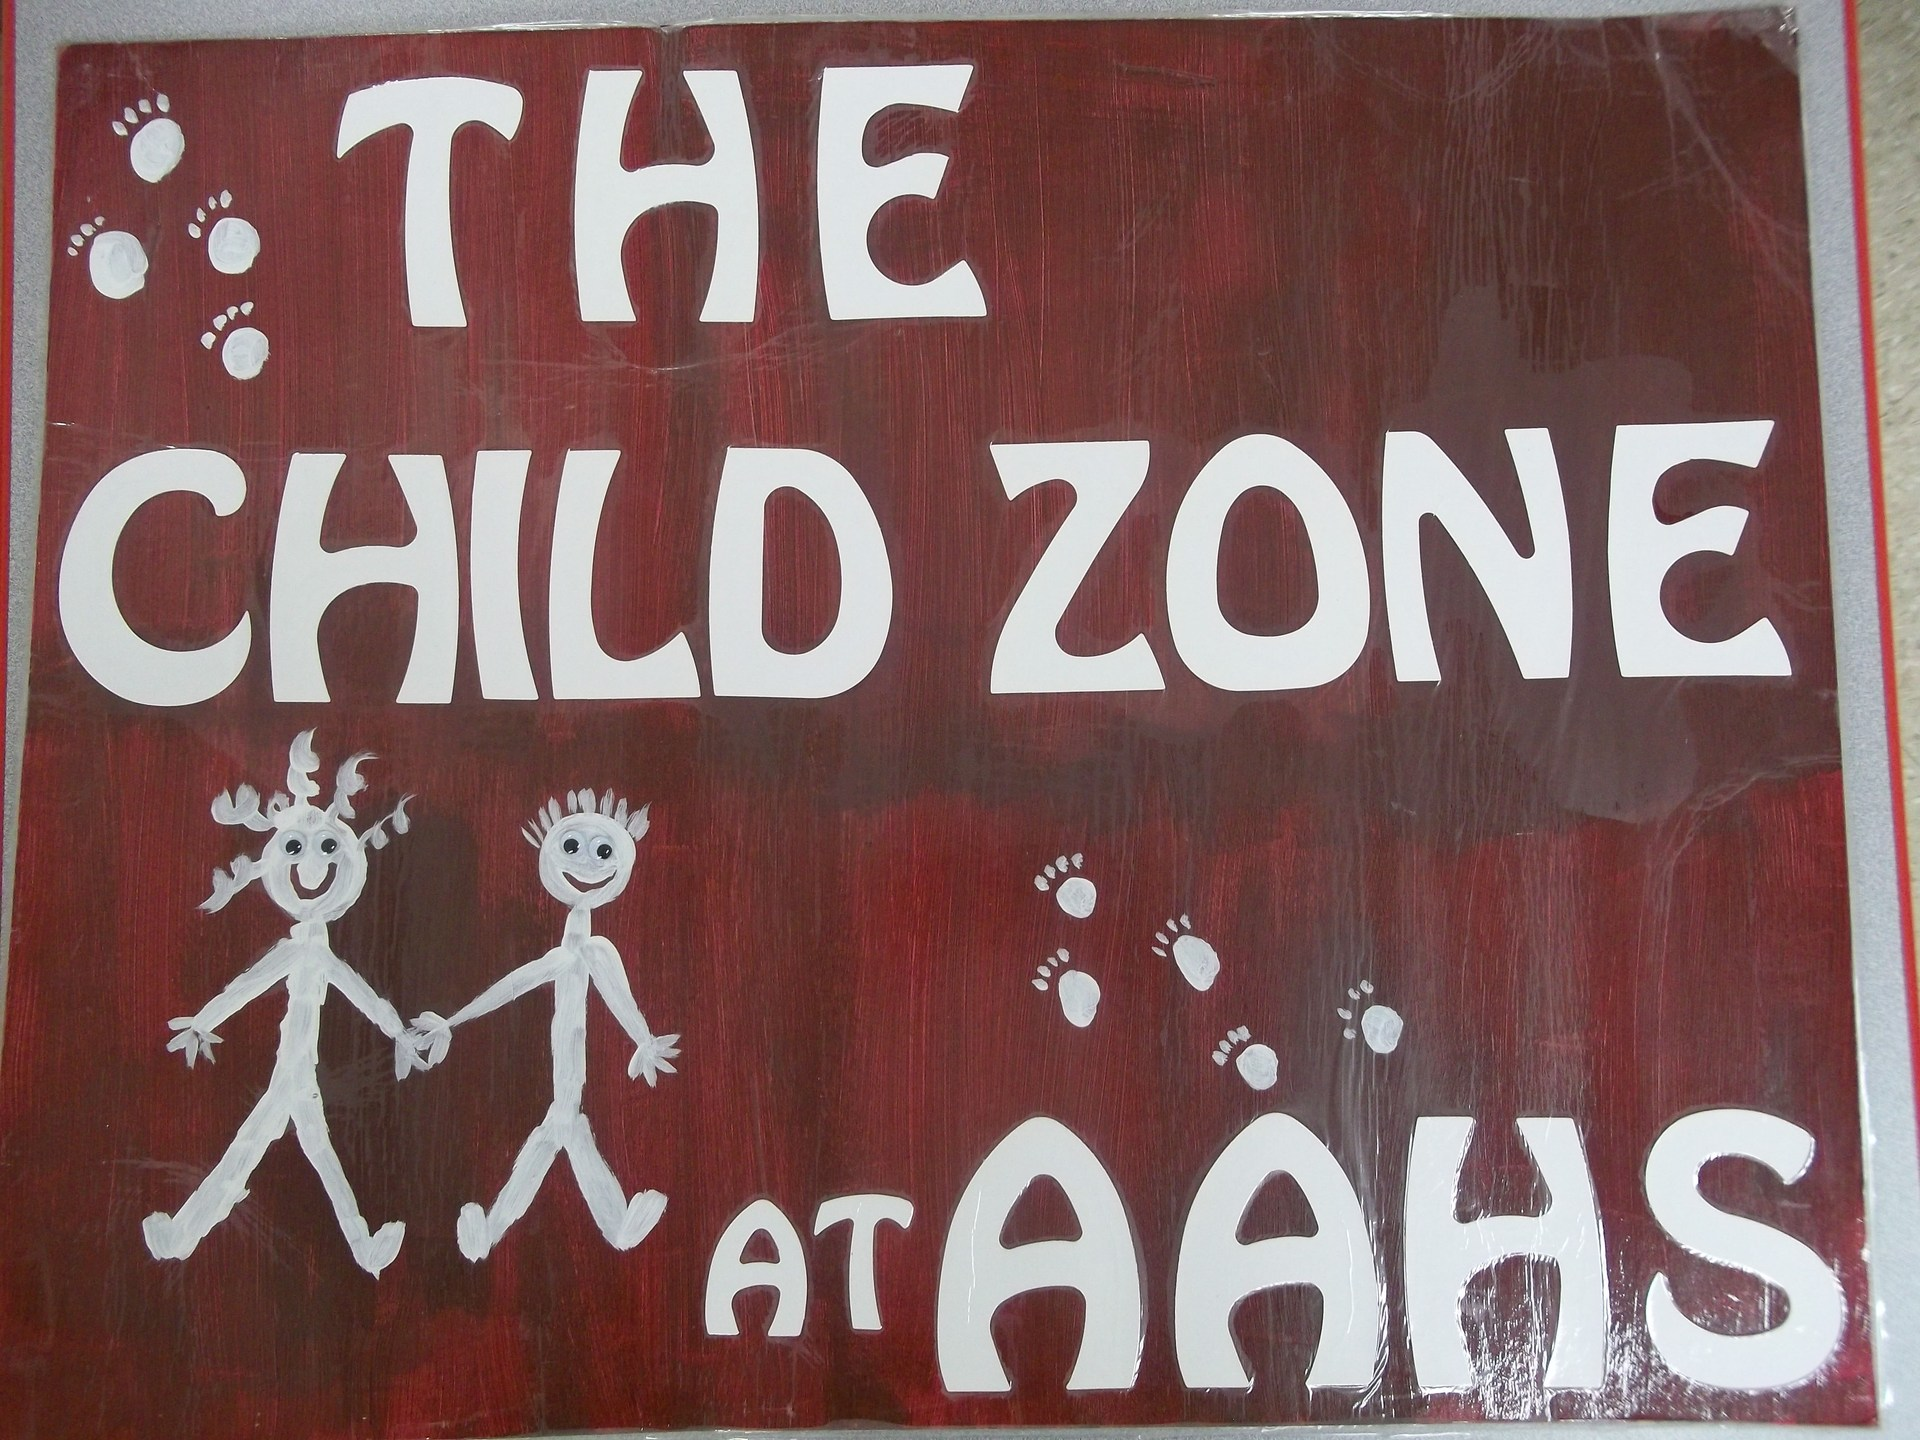 Child zone logo